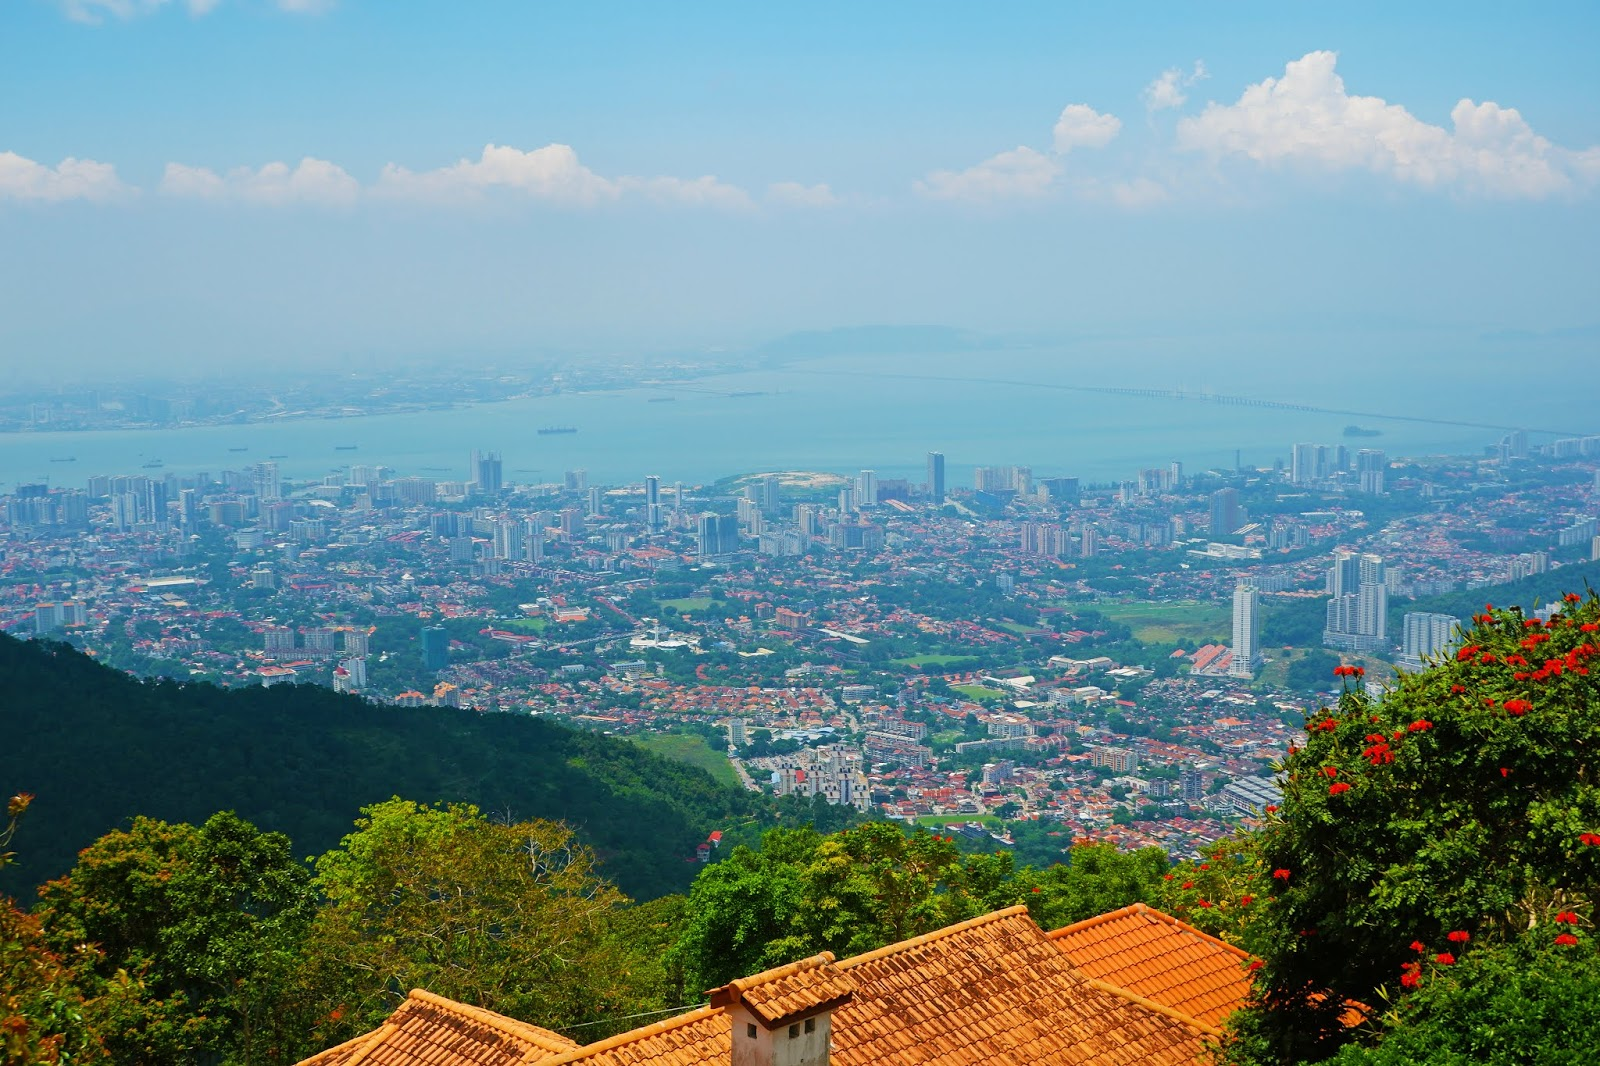 penang view from above